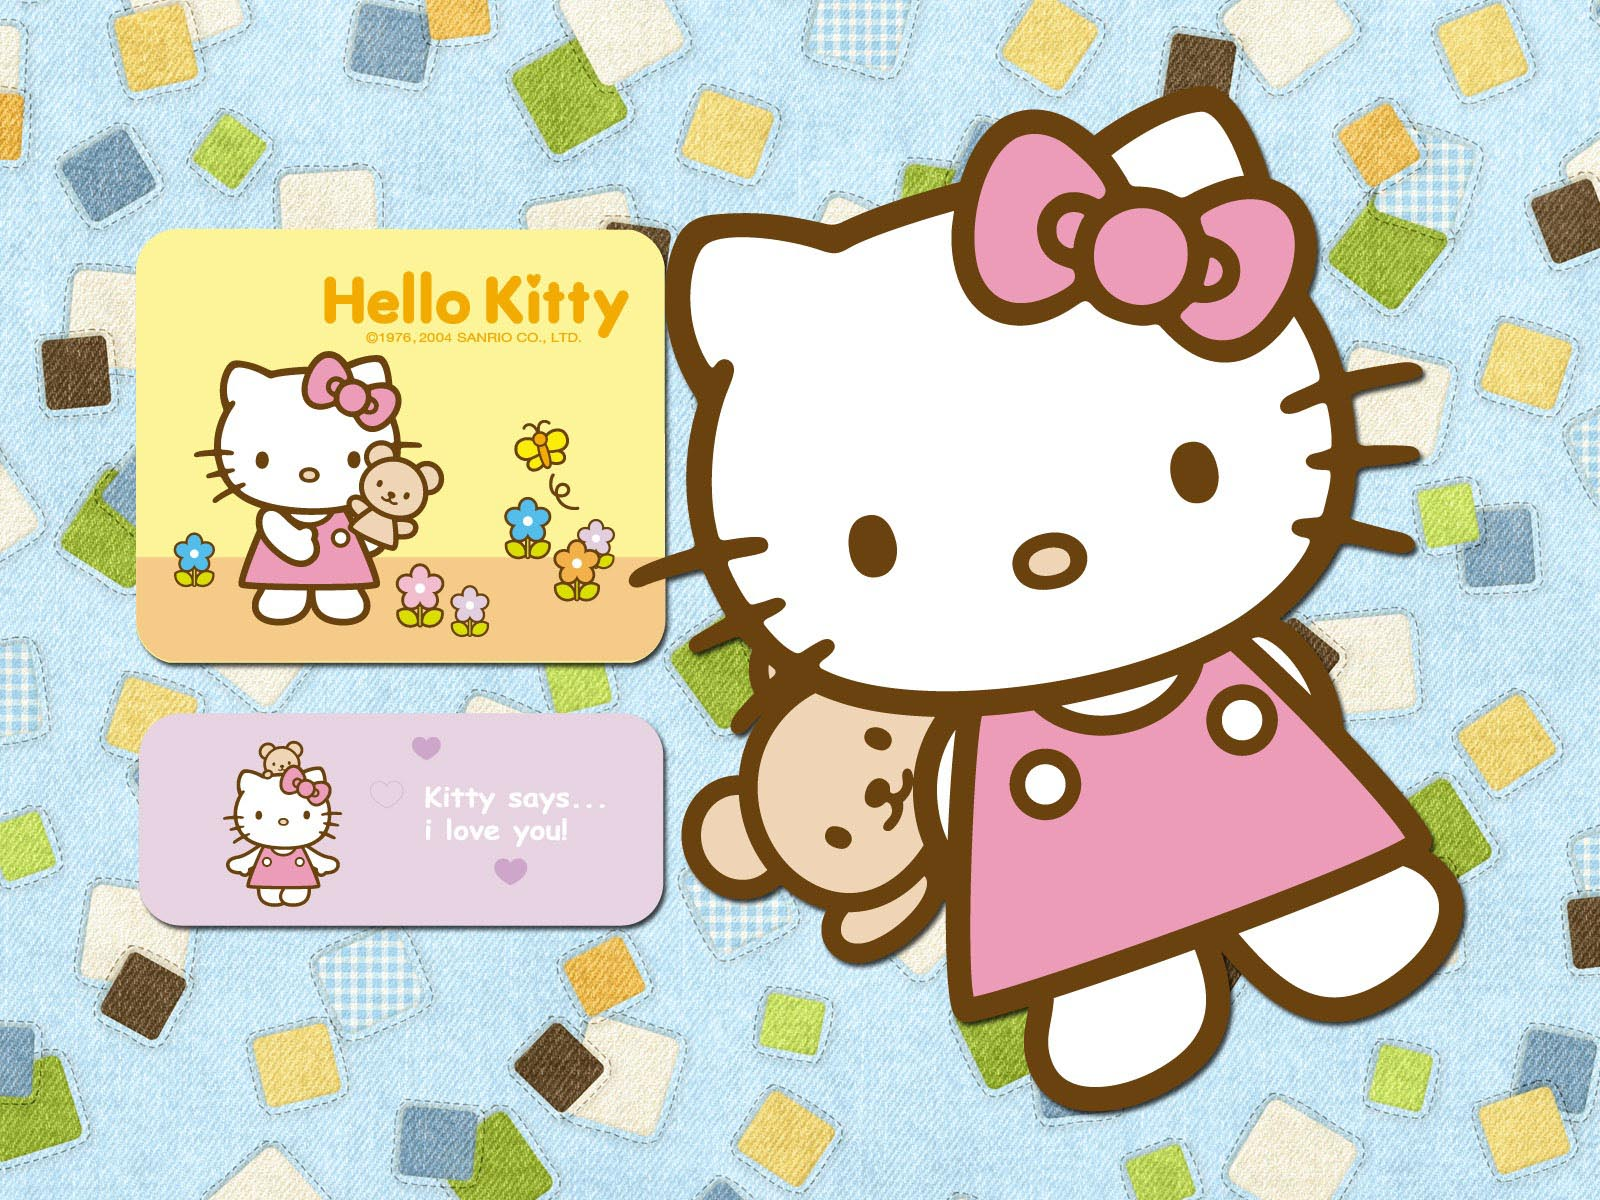 Must see Wallpaper Hello Kitty Blackberry - 5244012946_af7dc5c1c9_o  HD_332085.jpg